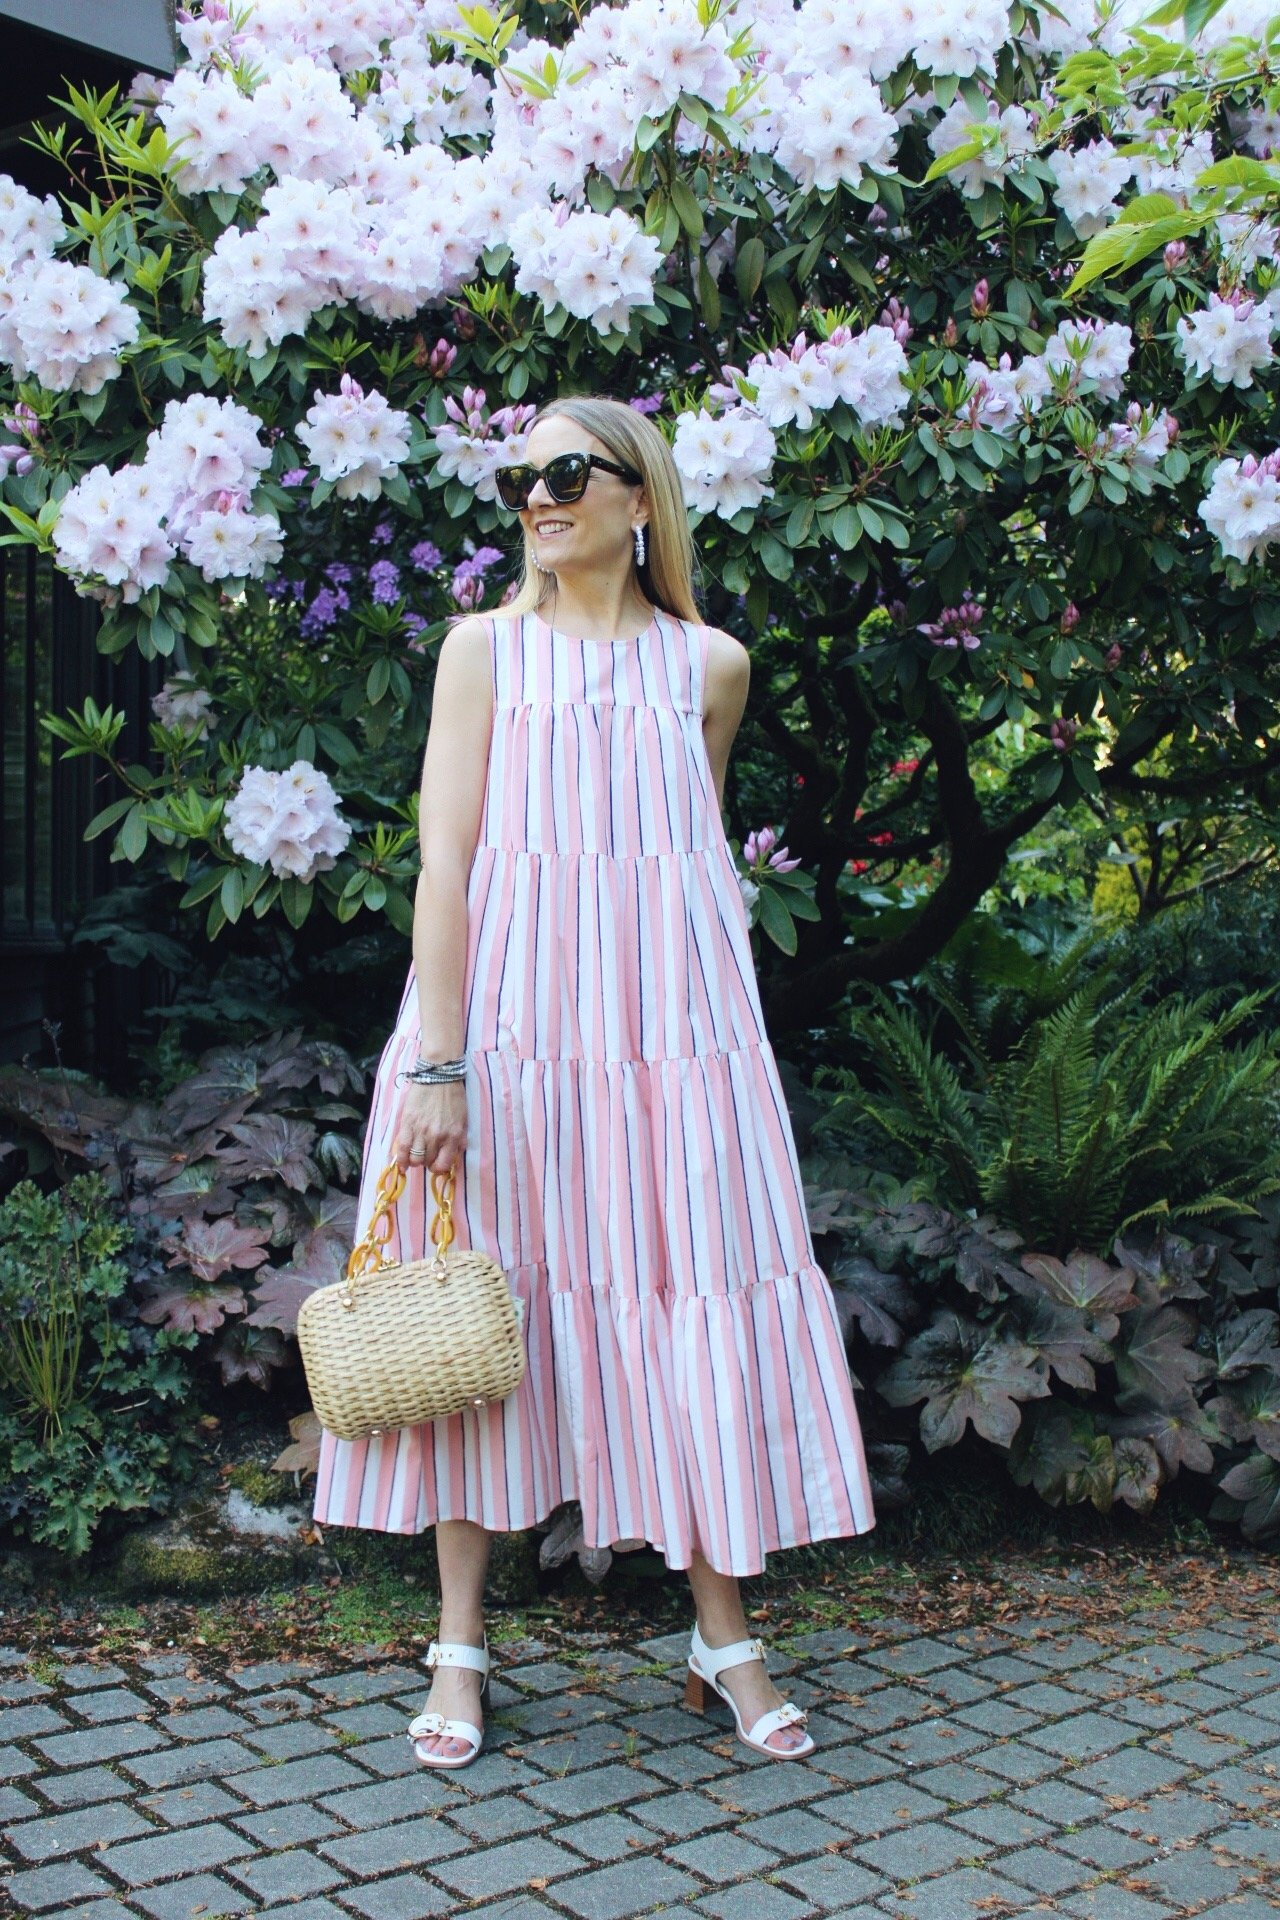 pink striped sundress with wicker basket bag and white heels